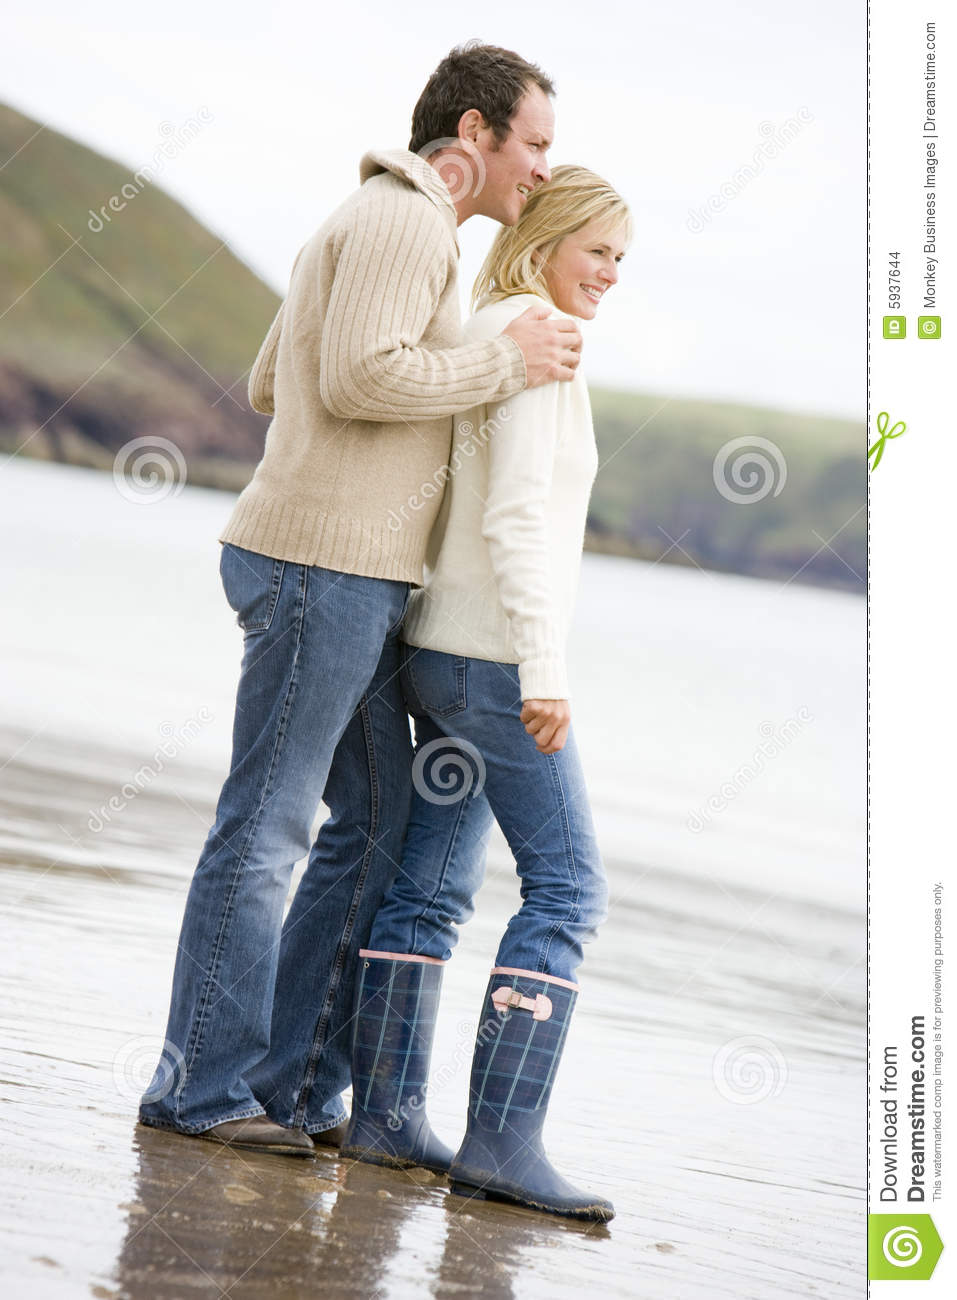 Couple Bed Legs Stock Photos and Pictures | Getty Images